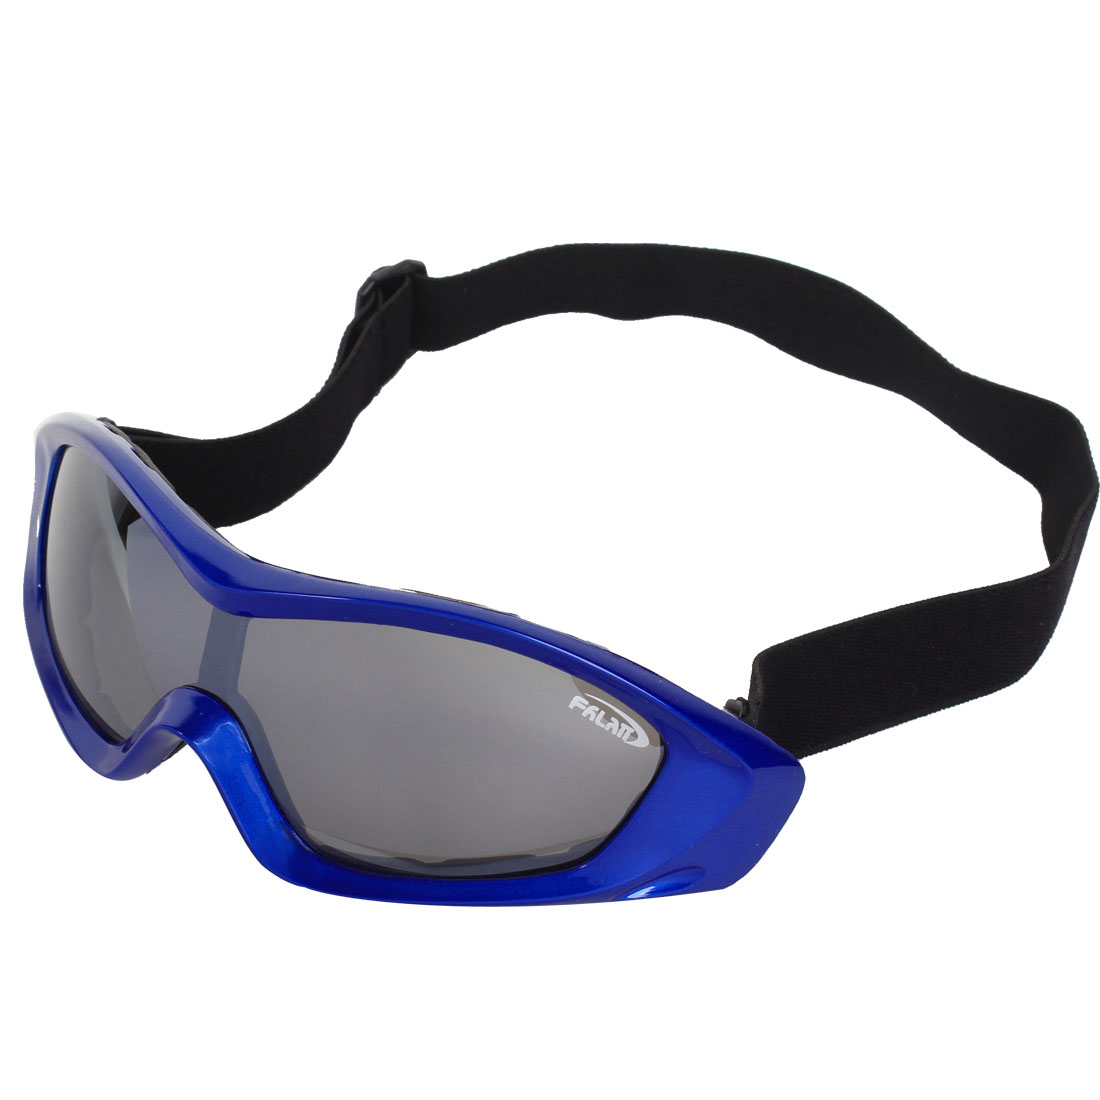 UV Protection Clear Dark Gray Lens Ski Snowboard Skate Sports Goggles Glasses Blue